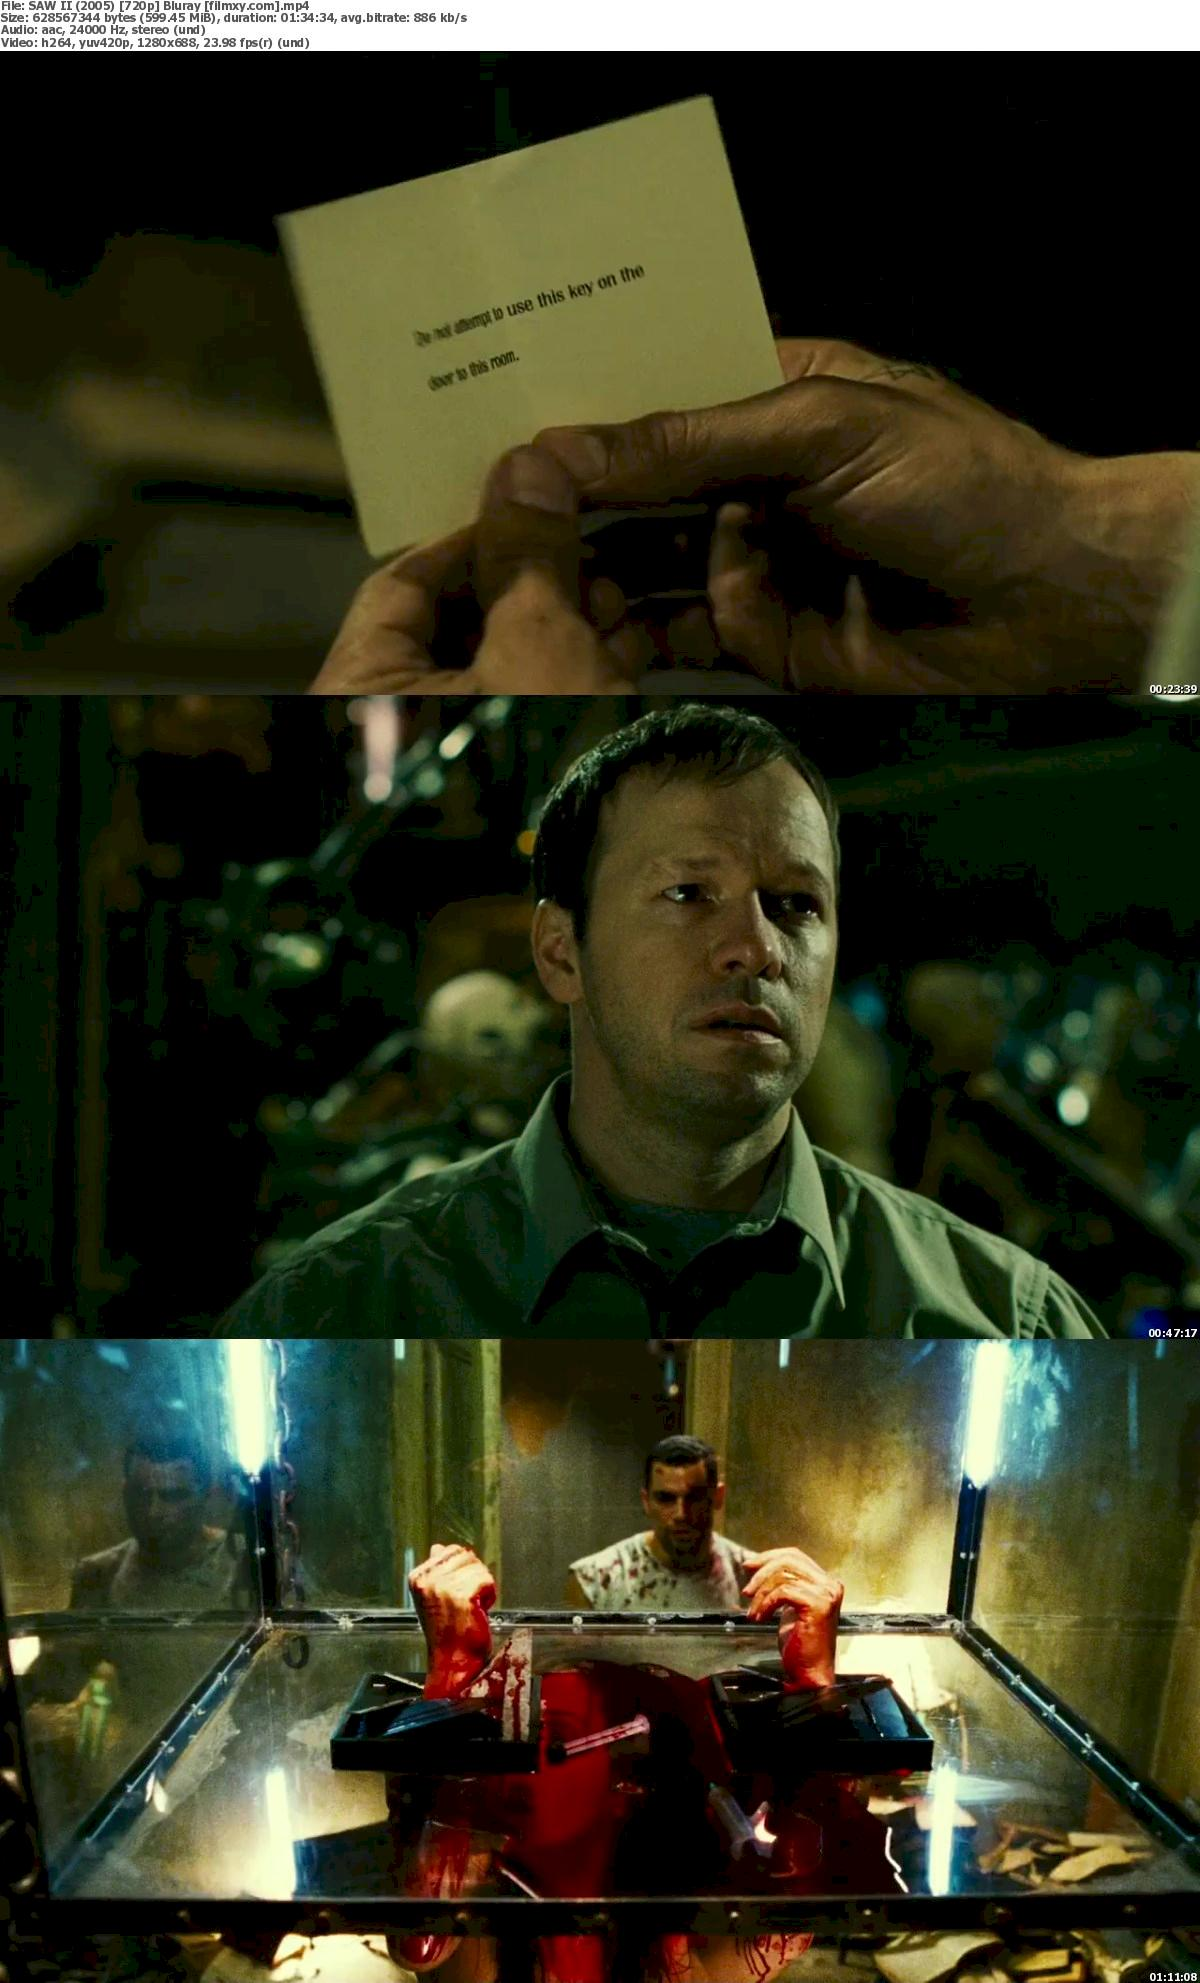 SAW II (2005) 720p & 1080p Bluray Free Download 720p Screenshot